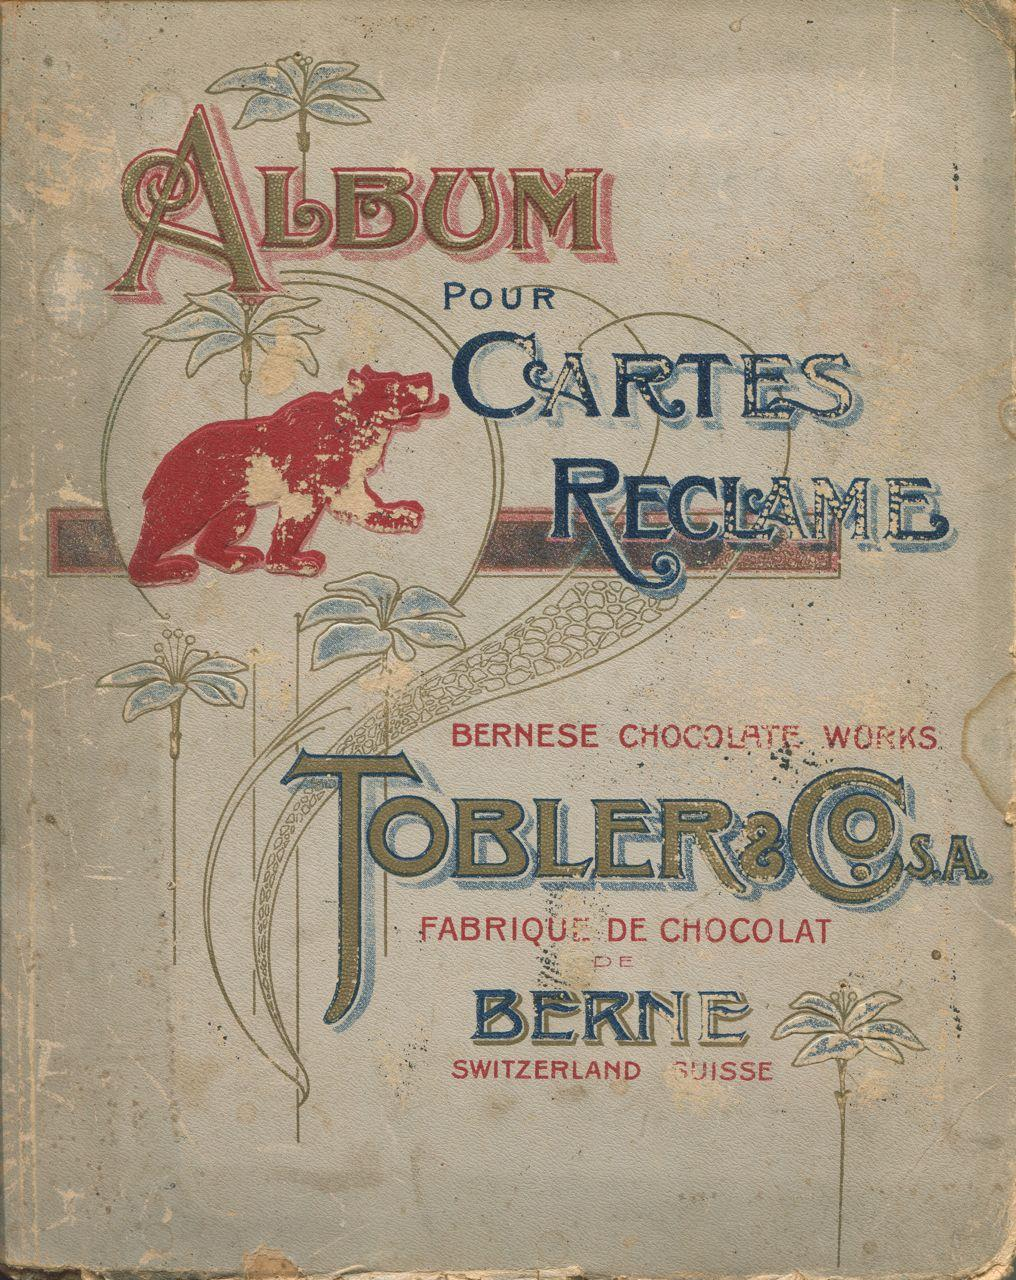 Album pour cartes reclame. Tobler & Co. Hardcover Contains 152 Tobler cards. 27 cm. FR. Sound condition, covers worn, some cards fitted into sleeves, some glued in.